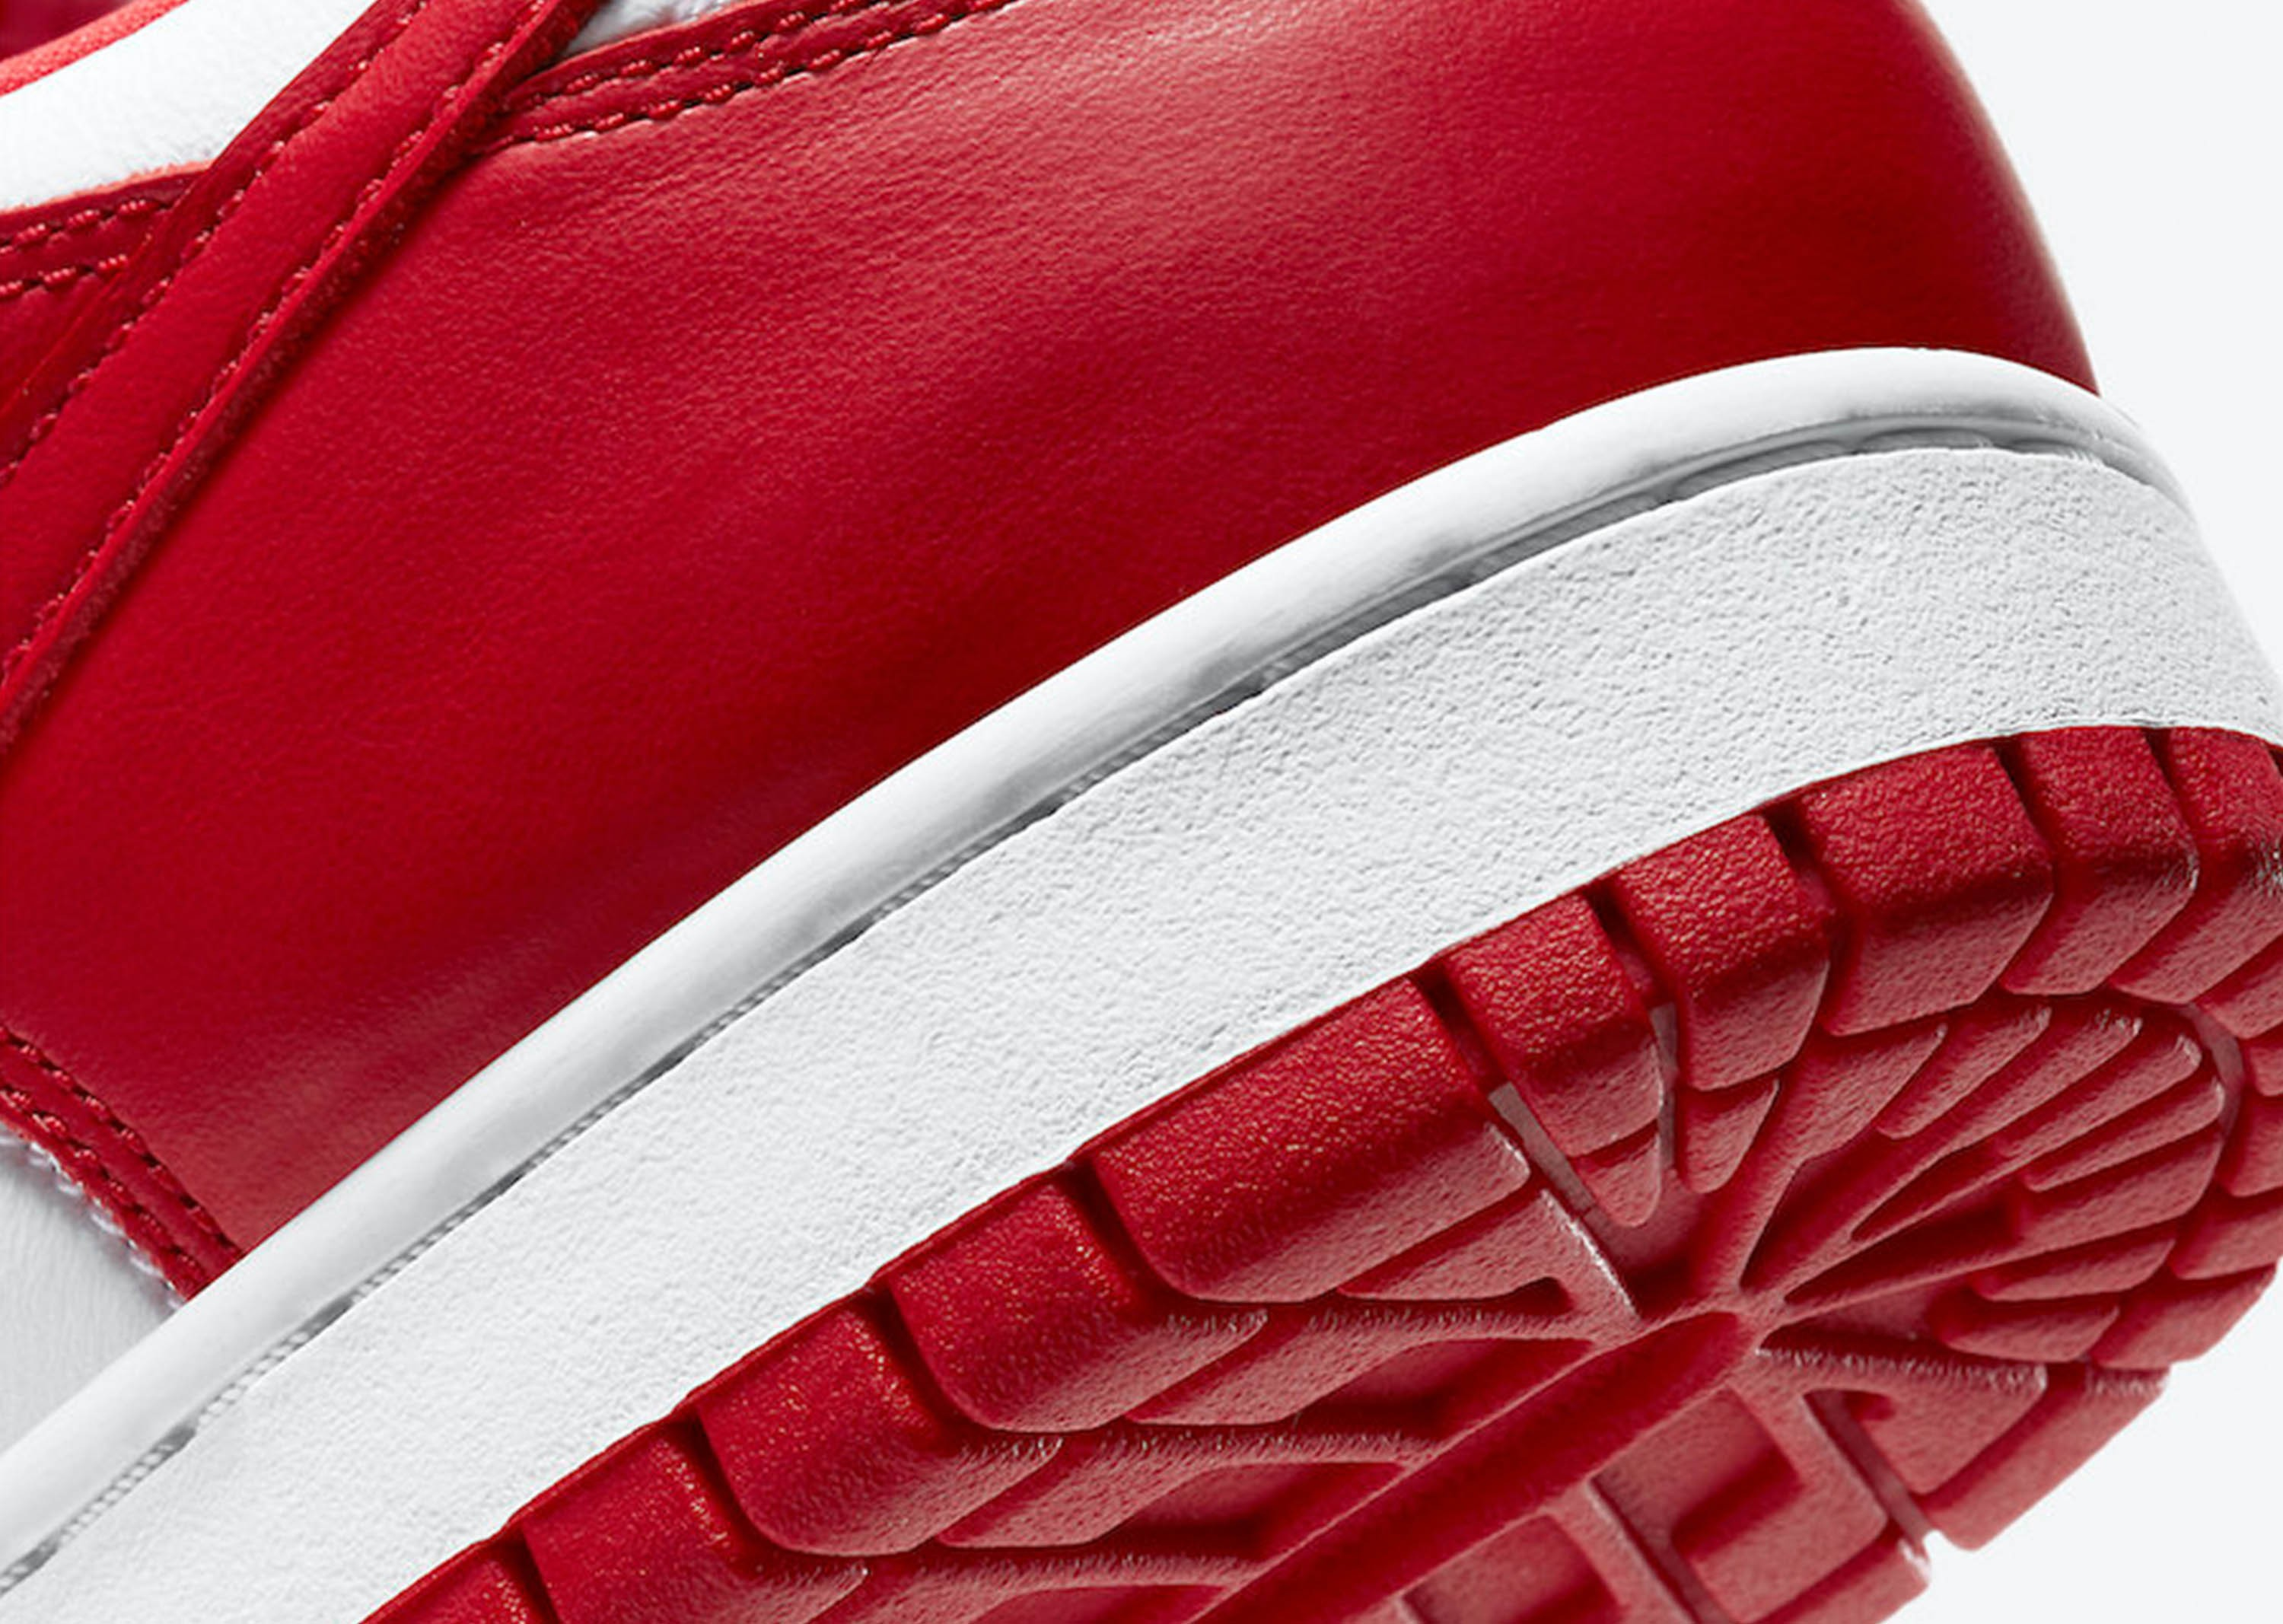 nike_dunk_low_university_red_0007_Nike-Dunk-Low-University-Red-CU1727-100______-Release-Date-Price-7